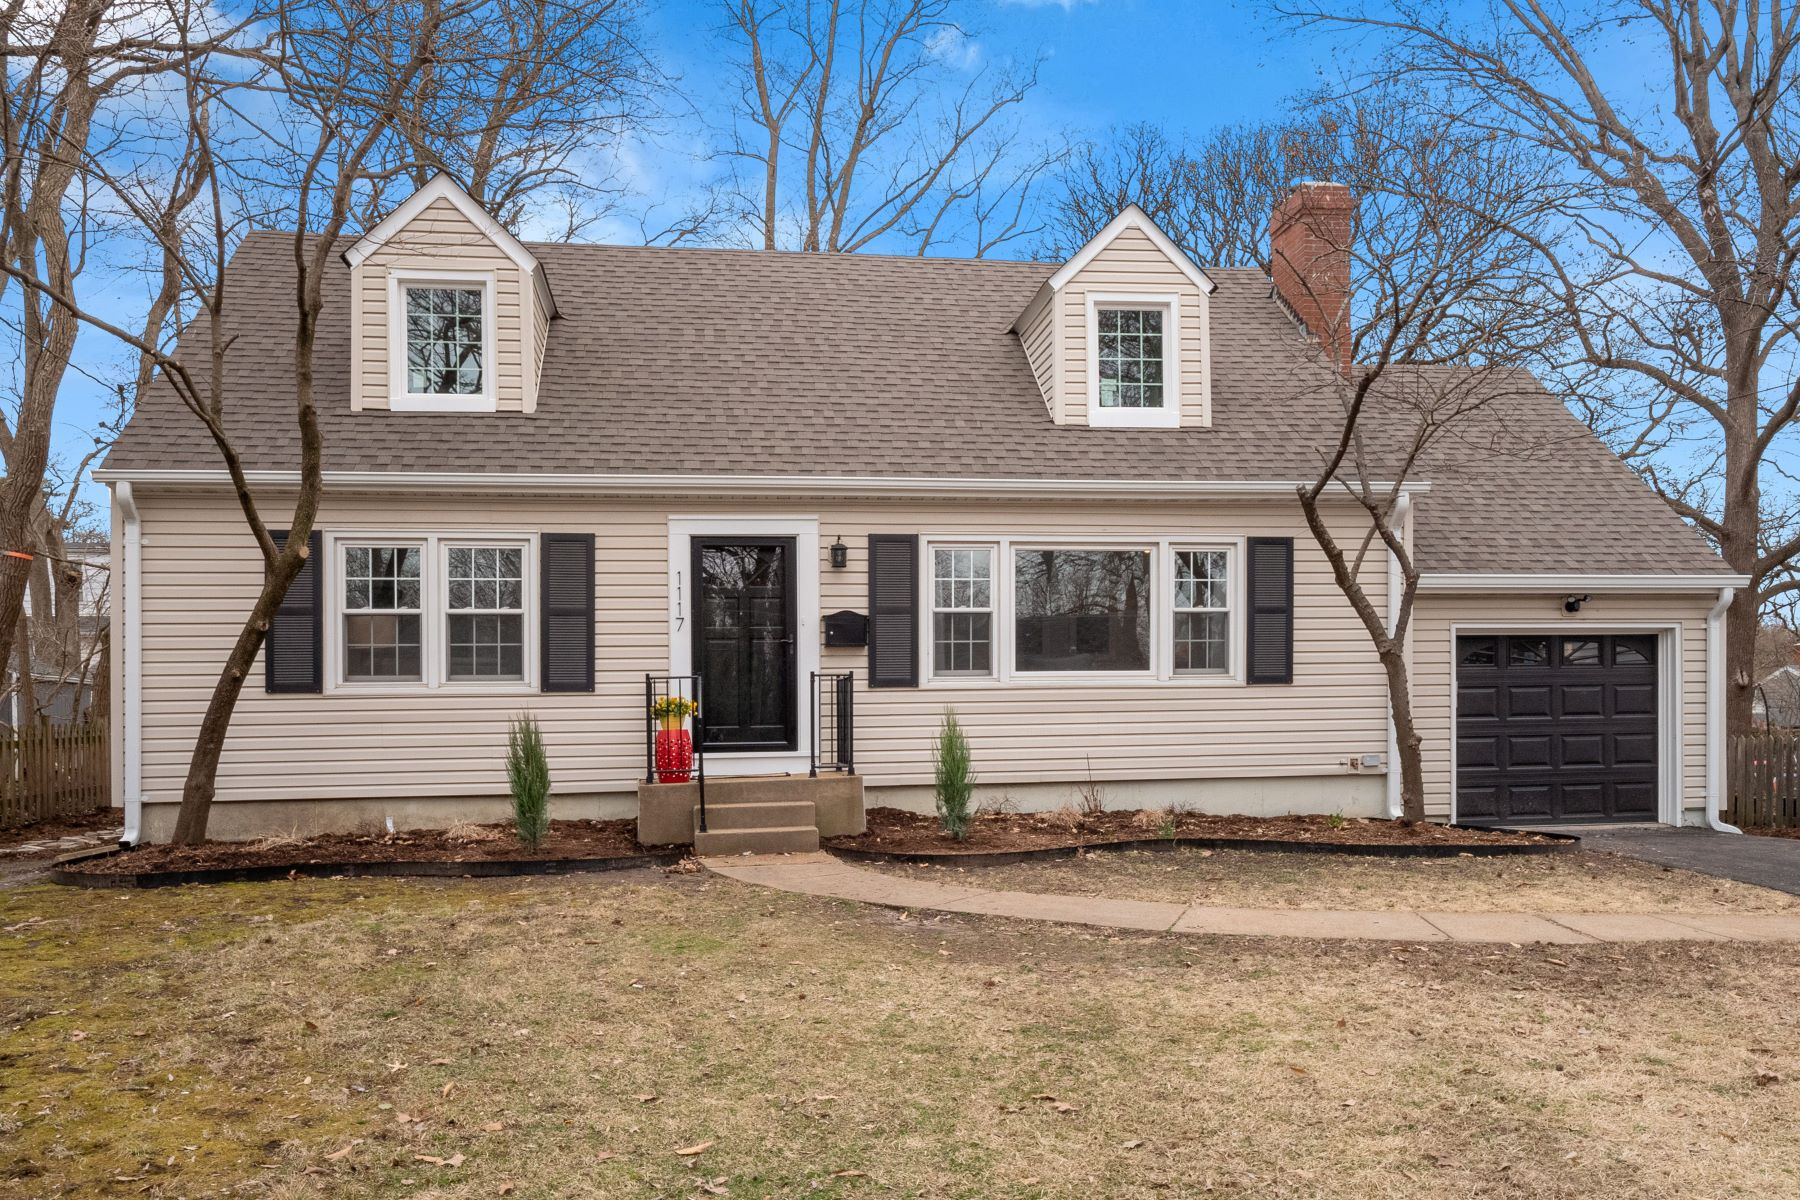 Single Family Homes for Sale at Renovated Webster Groves Charmer 1117 Elm Drive Webster Groves, Missouri 63119 United States